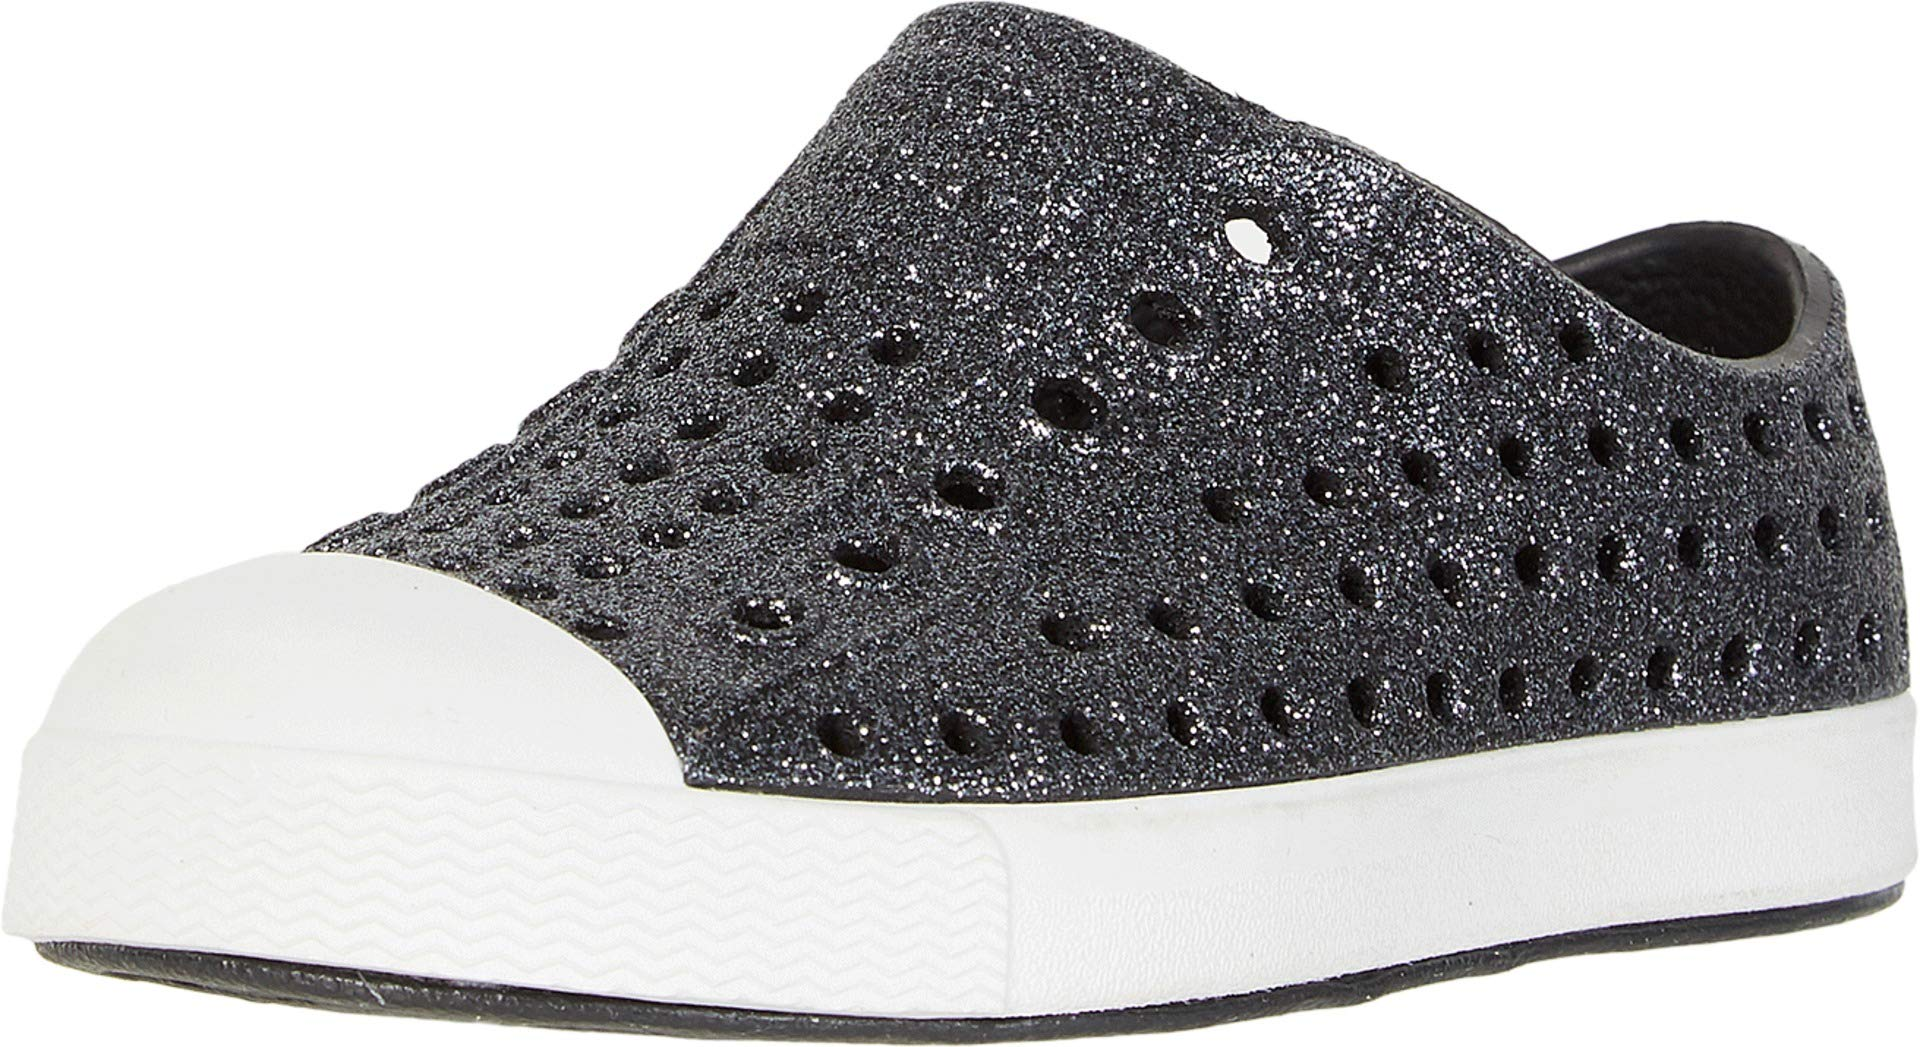 Native Kids Shoes Baby Girl's Jefferson Bling Glitter (Toddler/Little Kid) Jiffy Bling/Shell White 4 M US Toddler